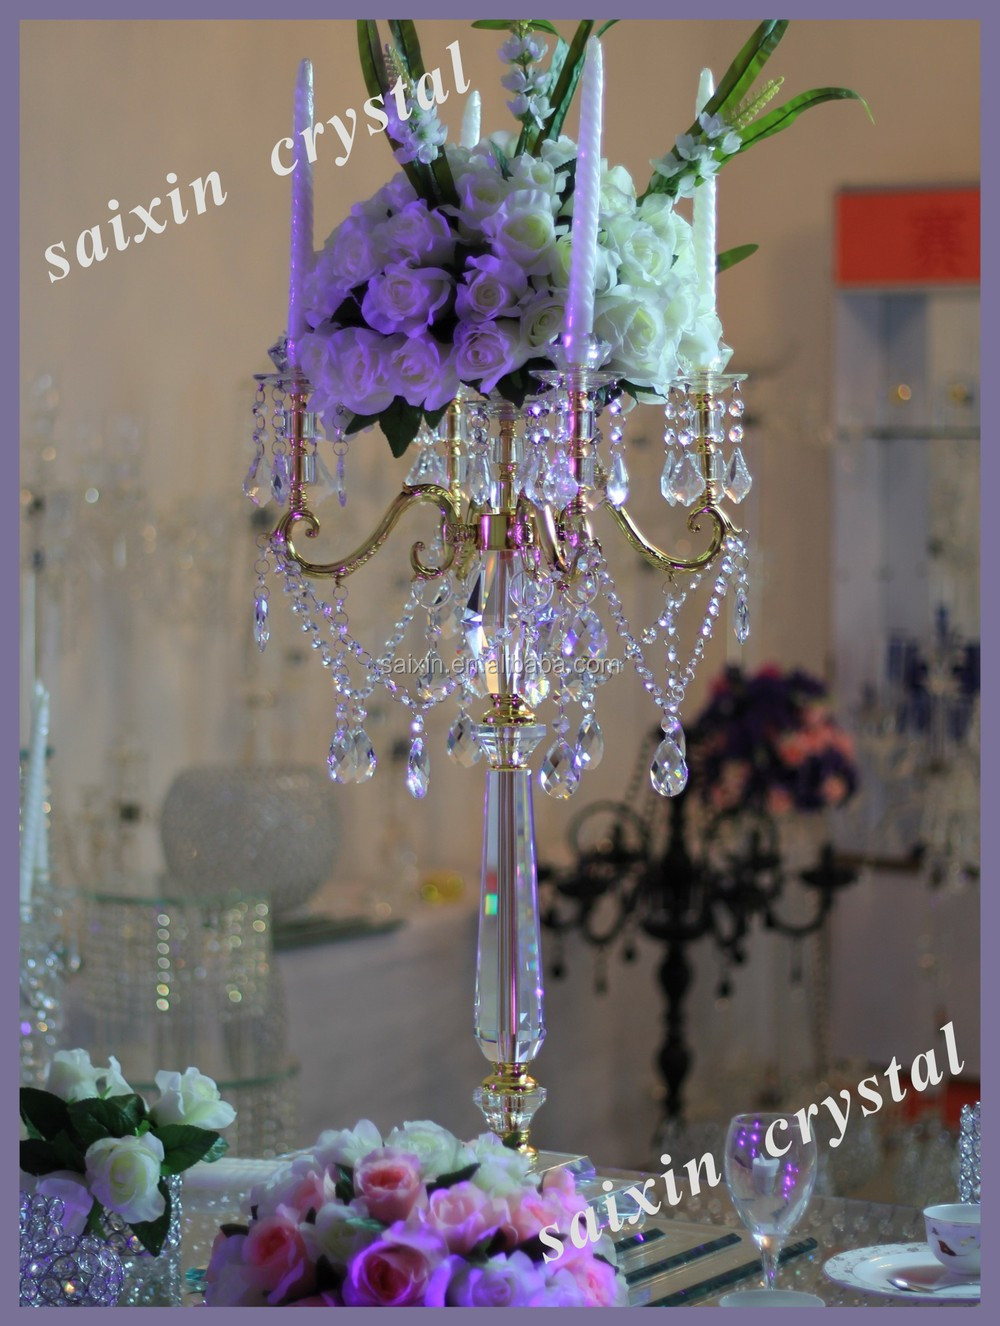 Guangzhou wedding market wholesale wedding decoration buy guangzhou wedding market wholesale wedding decoration junglespirit